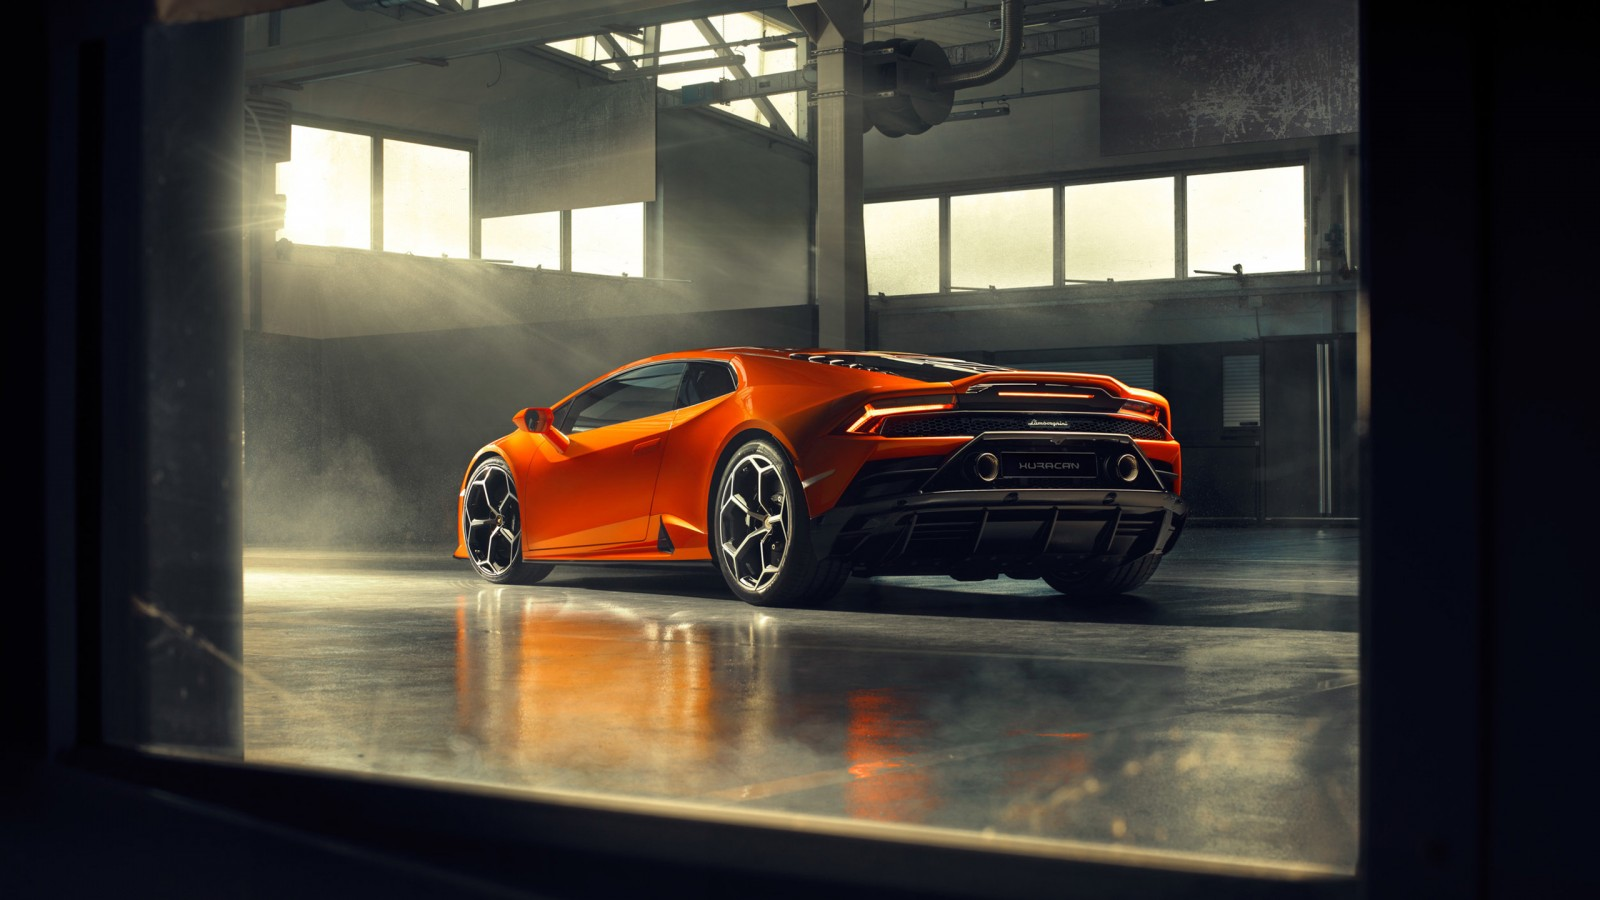 Lamborghini Huracan EVO 2019 4K 2 Wallpaper | HD Car Wallpapers | ID #11878